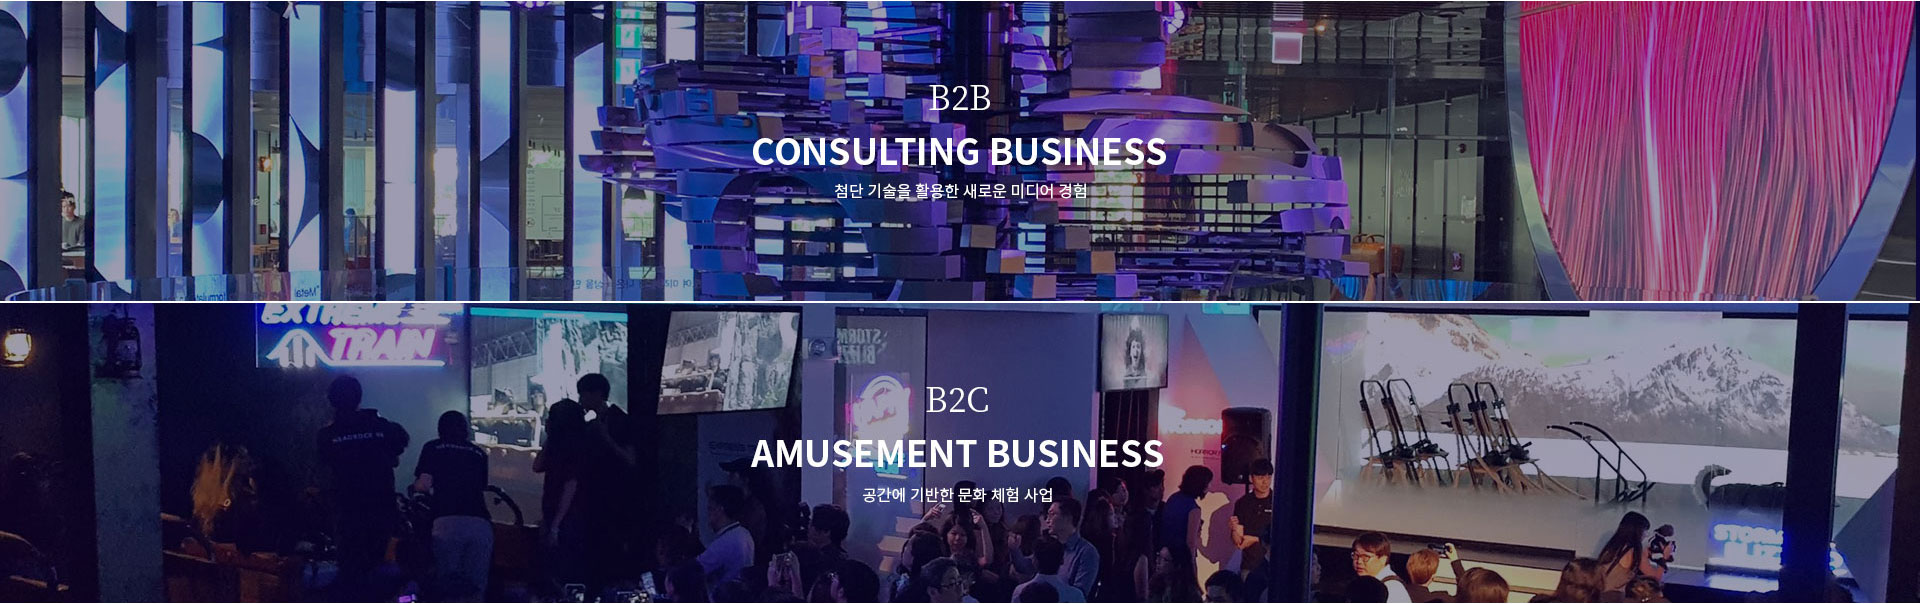 B2B CONSULTING BUSINESS, B2C AMUSEMENT BUSINESS